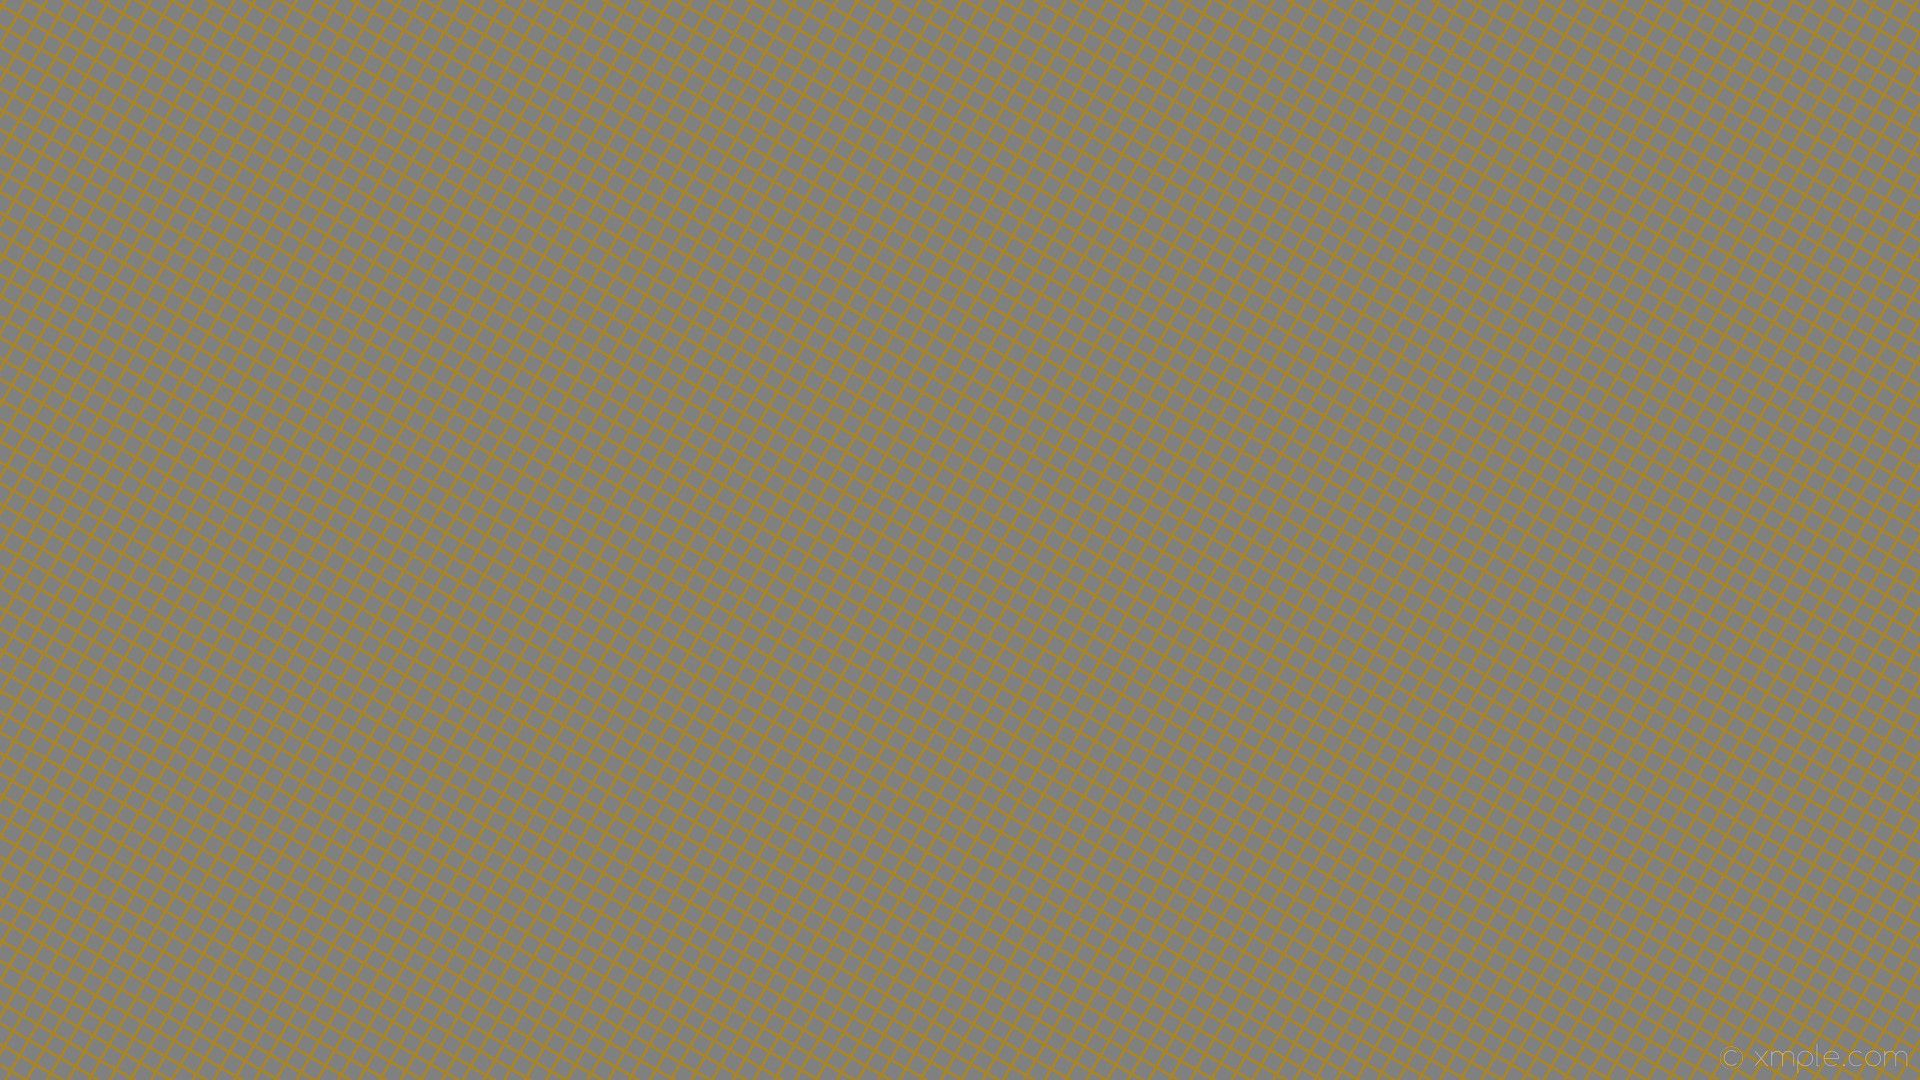 Beige Aesthetic Desktop Wallpapers Top Free Beige Aesthetic Desktop Backgrounds Wallpaperaccess